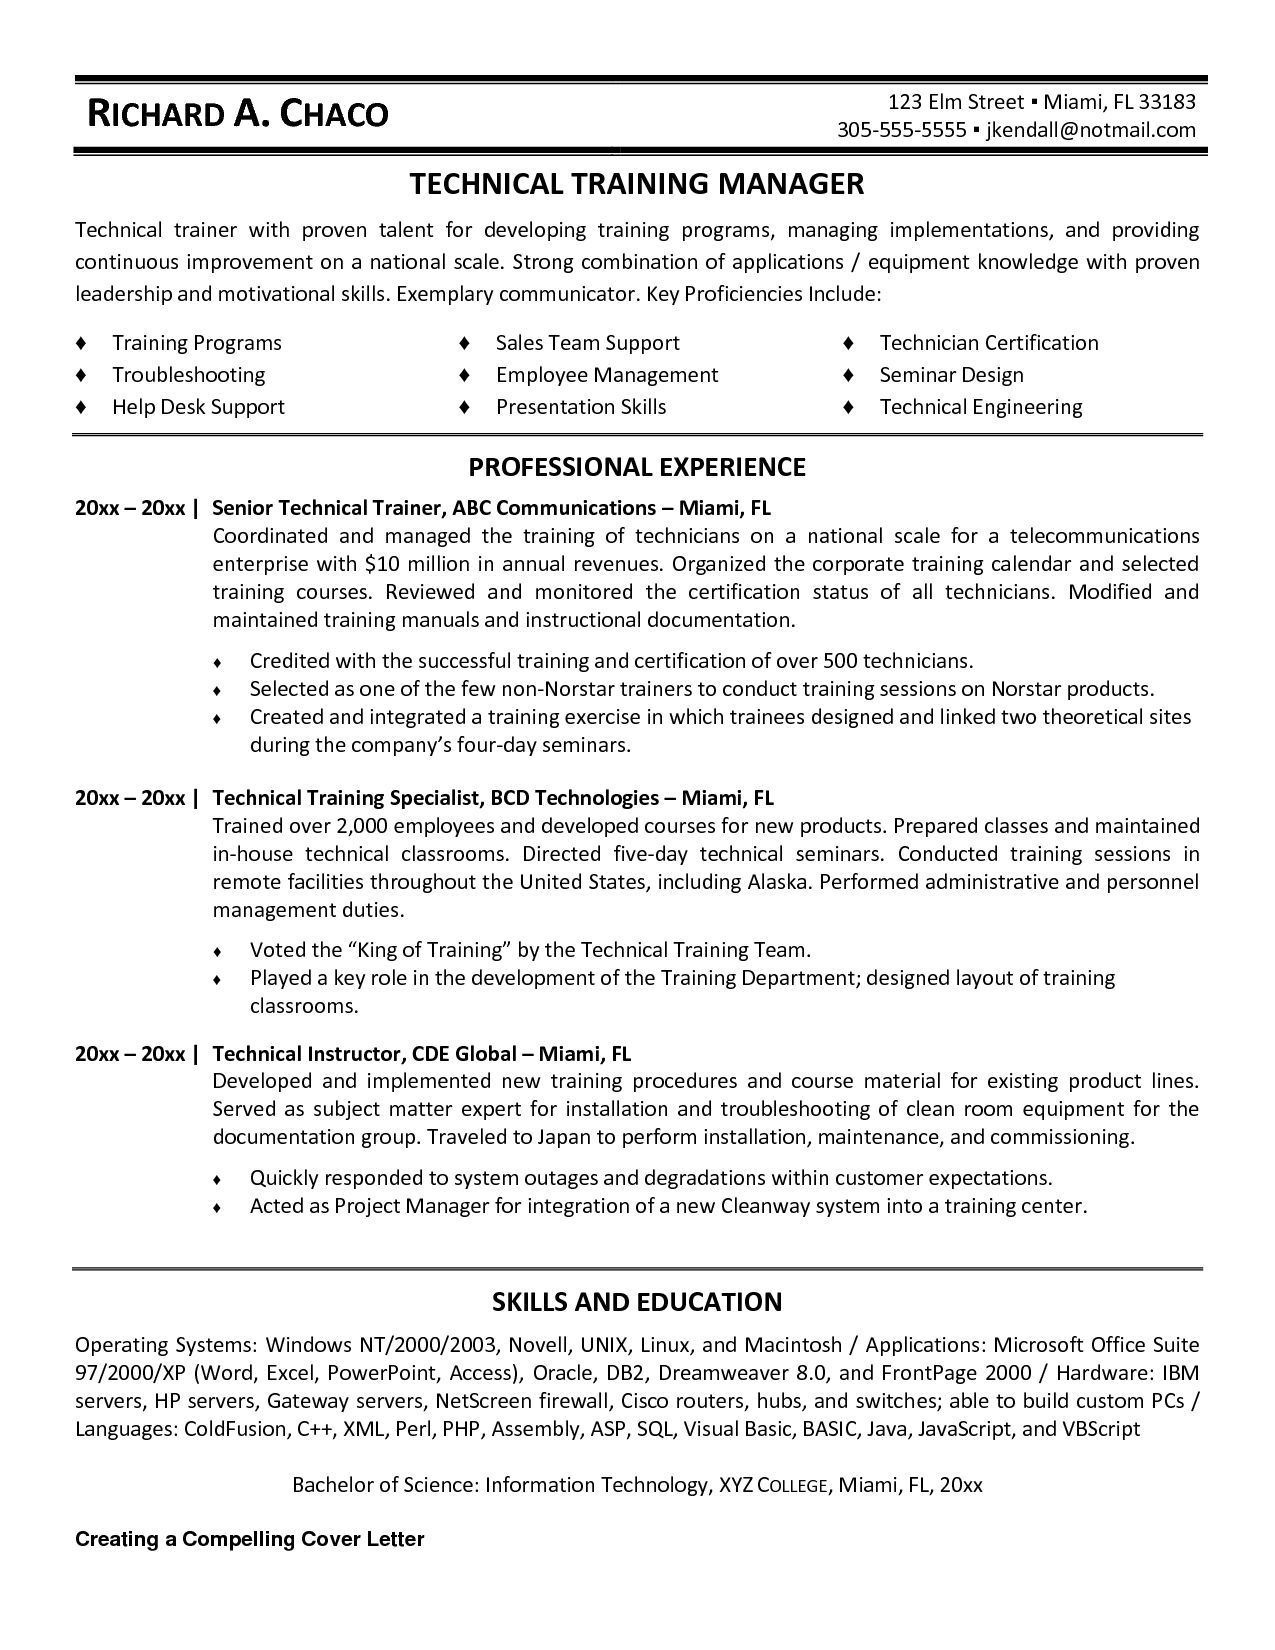 Resume For Personal Trainer Personal Trainer Resume Objective Personal Trainer Resume Sample .